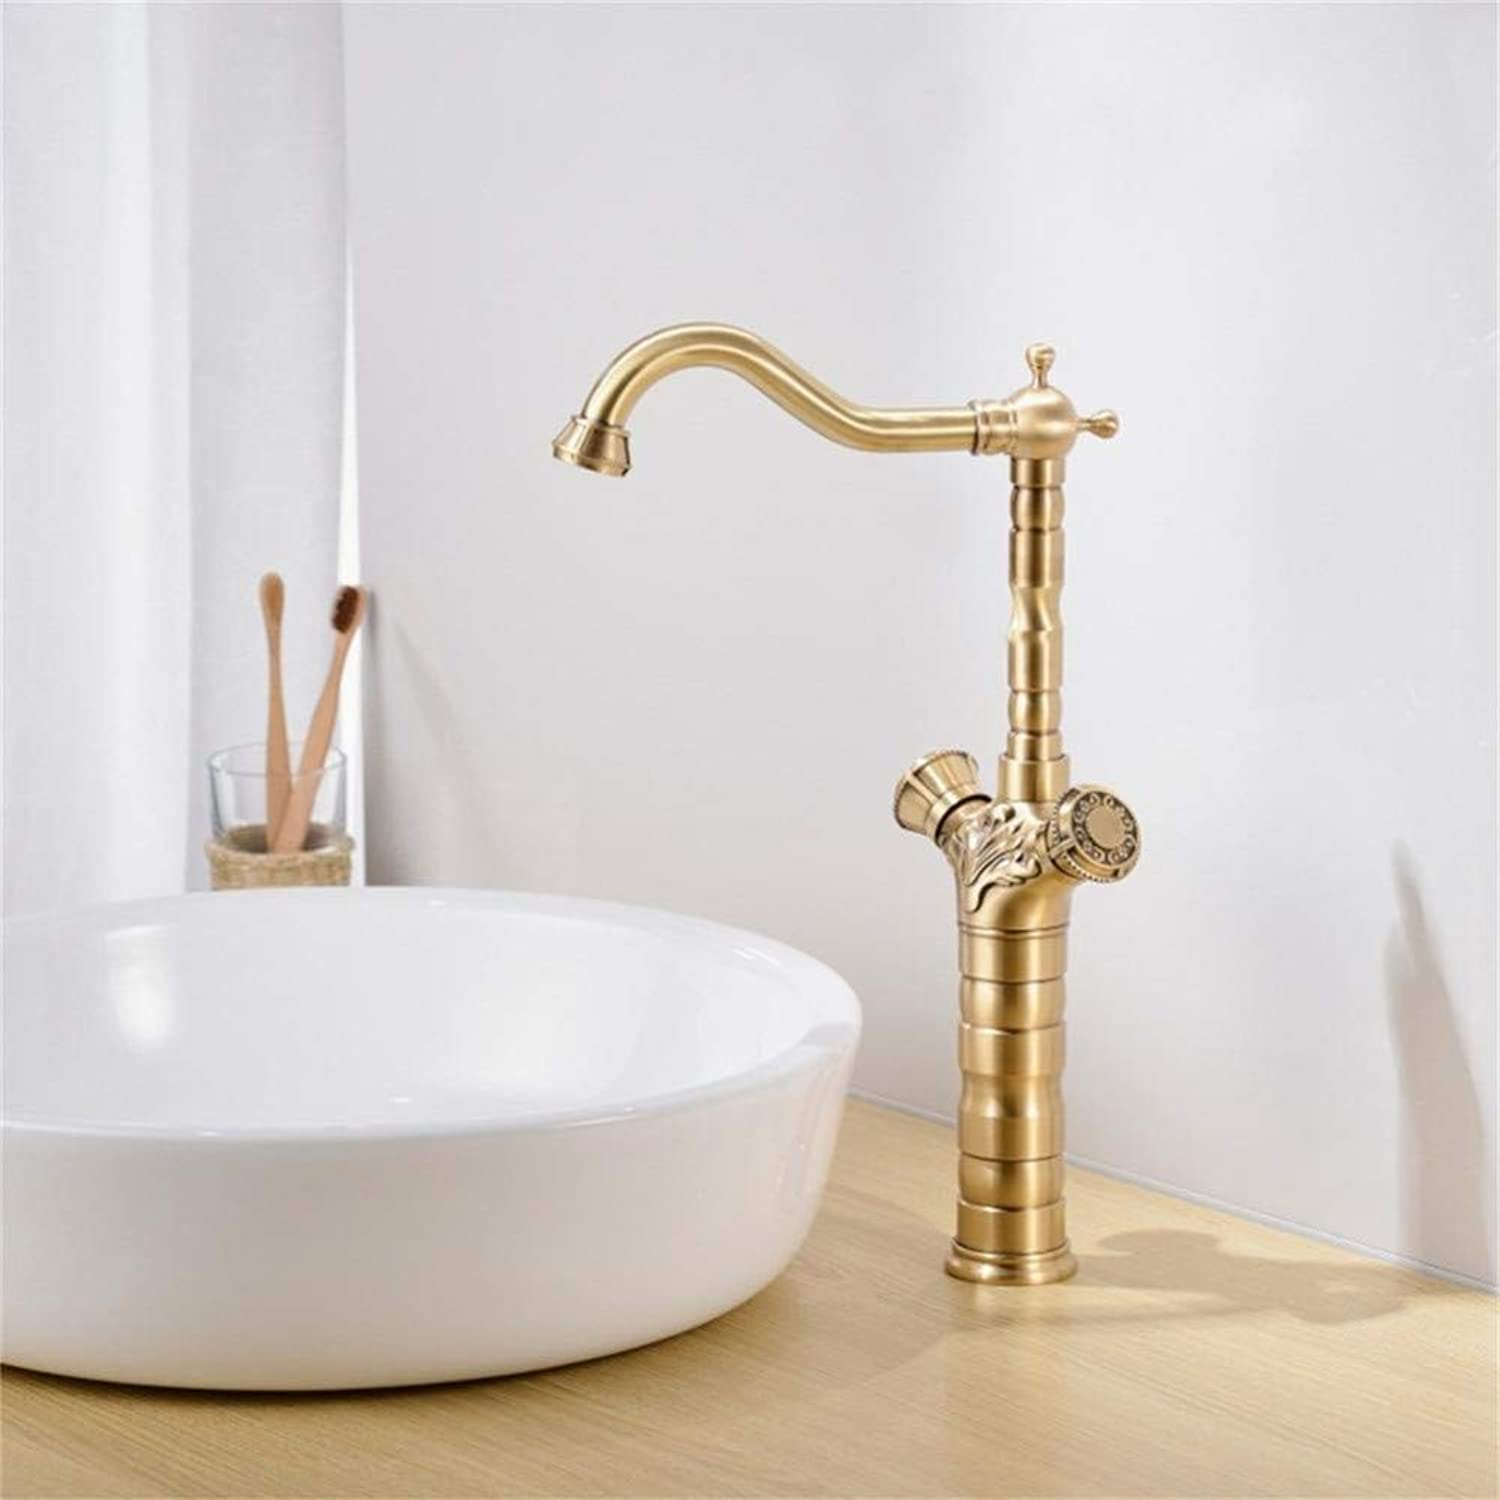 YHSGY Bathroom Sink Taps Basin Faucets Antique Brass Bathroom Faucet Basin Carving Tap redate Single Handle Hot and Cold Water Mixer Taps Crane